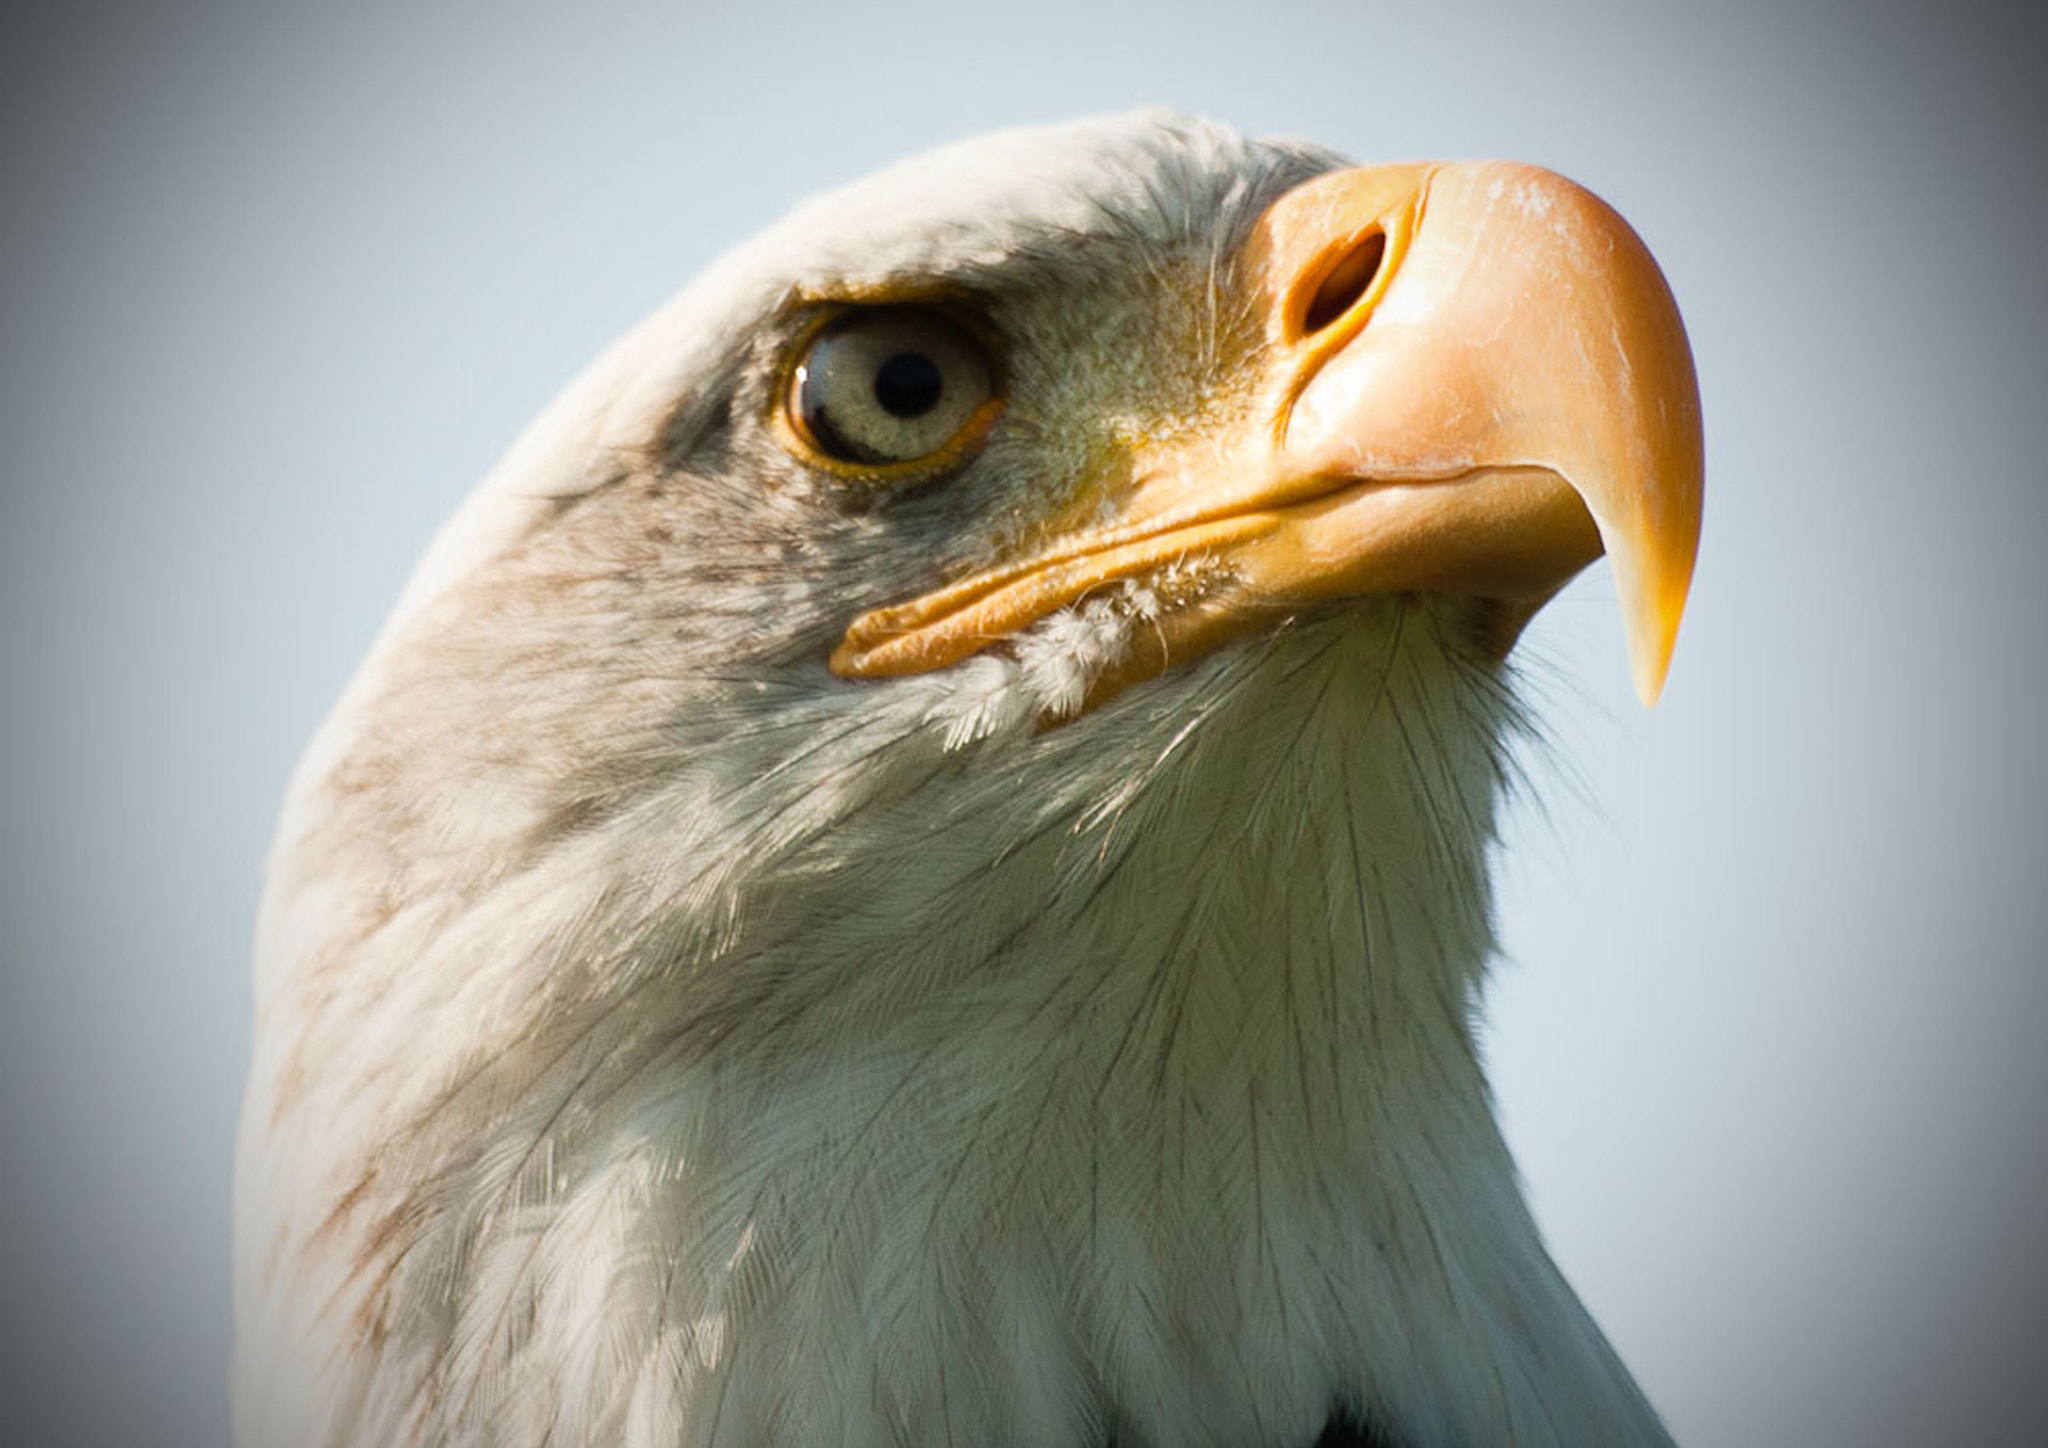 Photograph Eagle eyes by Paul Howcroft on 500px